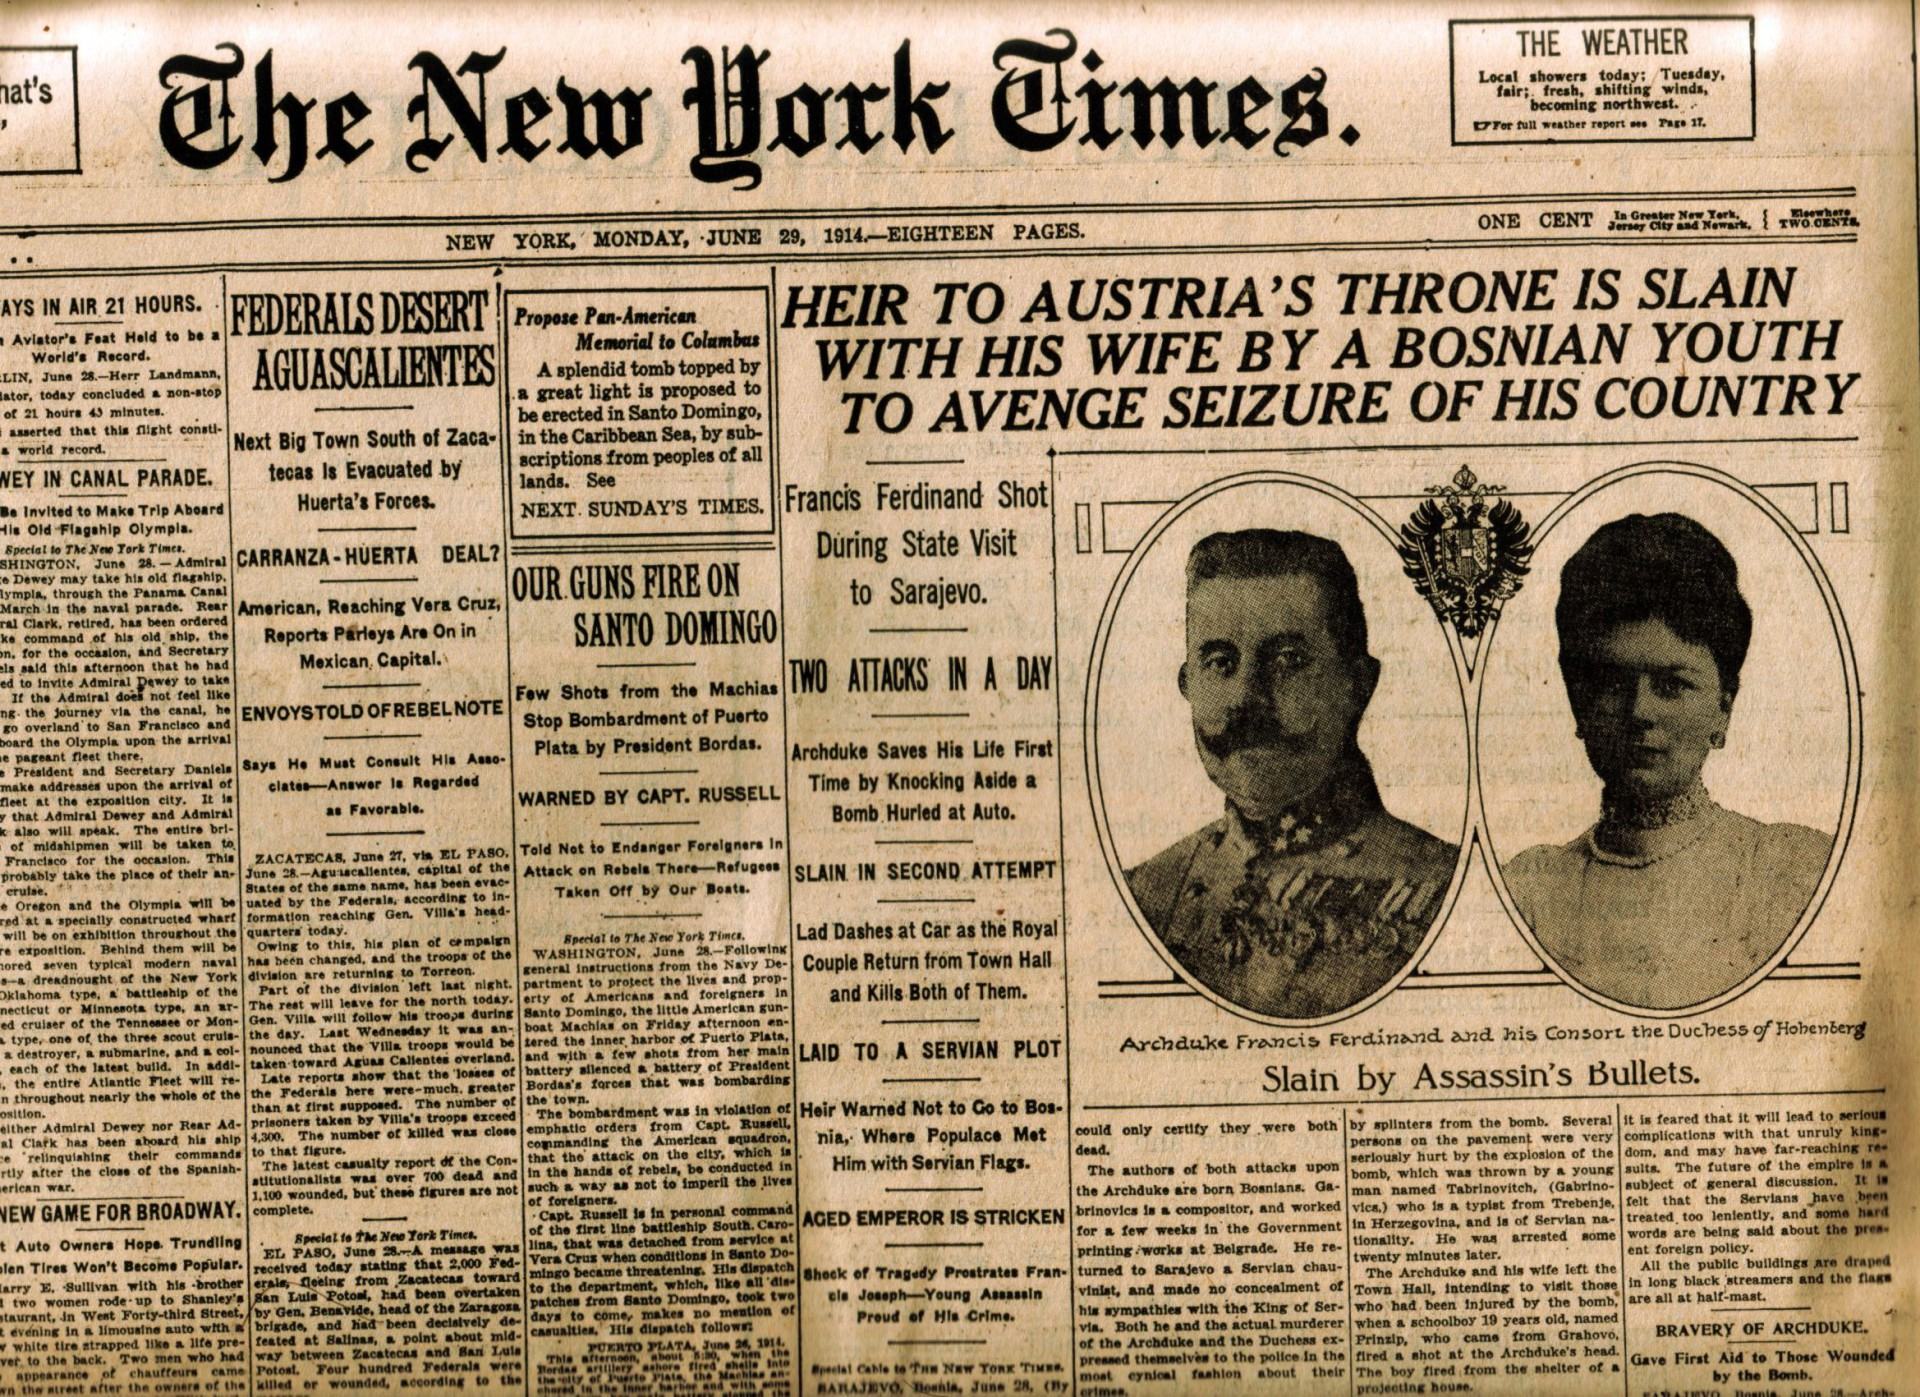 0054-01 NYT Headline June 29th 1914